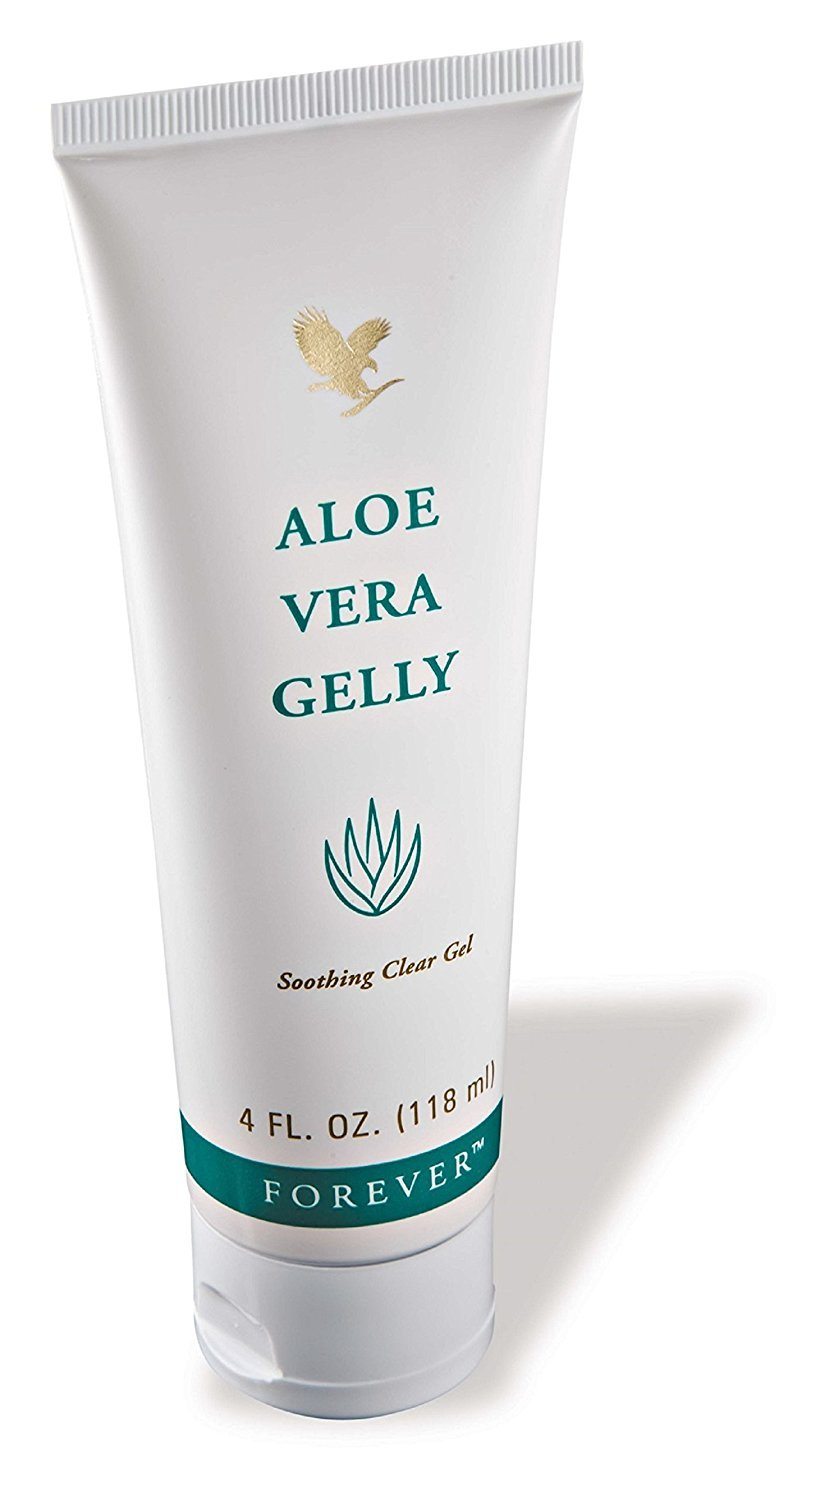 Aloe Vera Gelly 4 fl. oz. 100% stabilized aloe vera gel FOREVER LIVING PRODUCTS 061